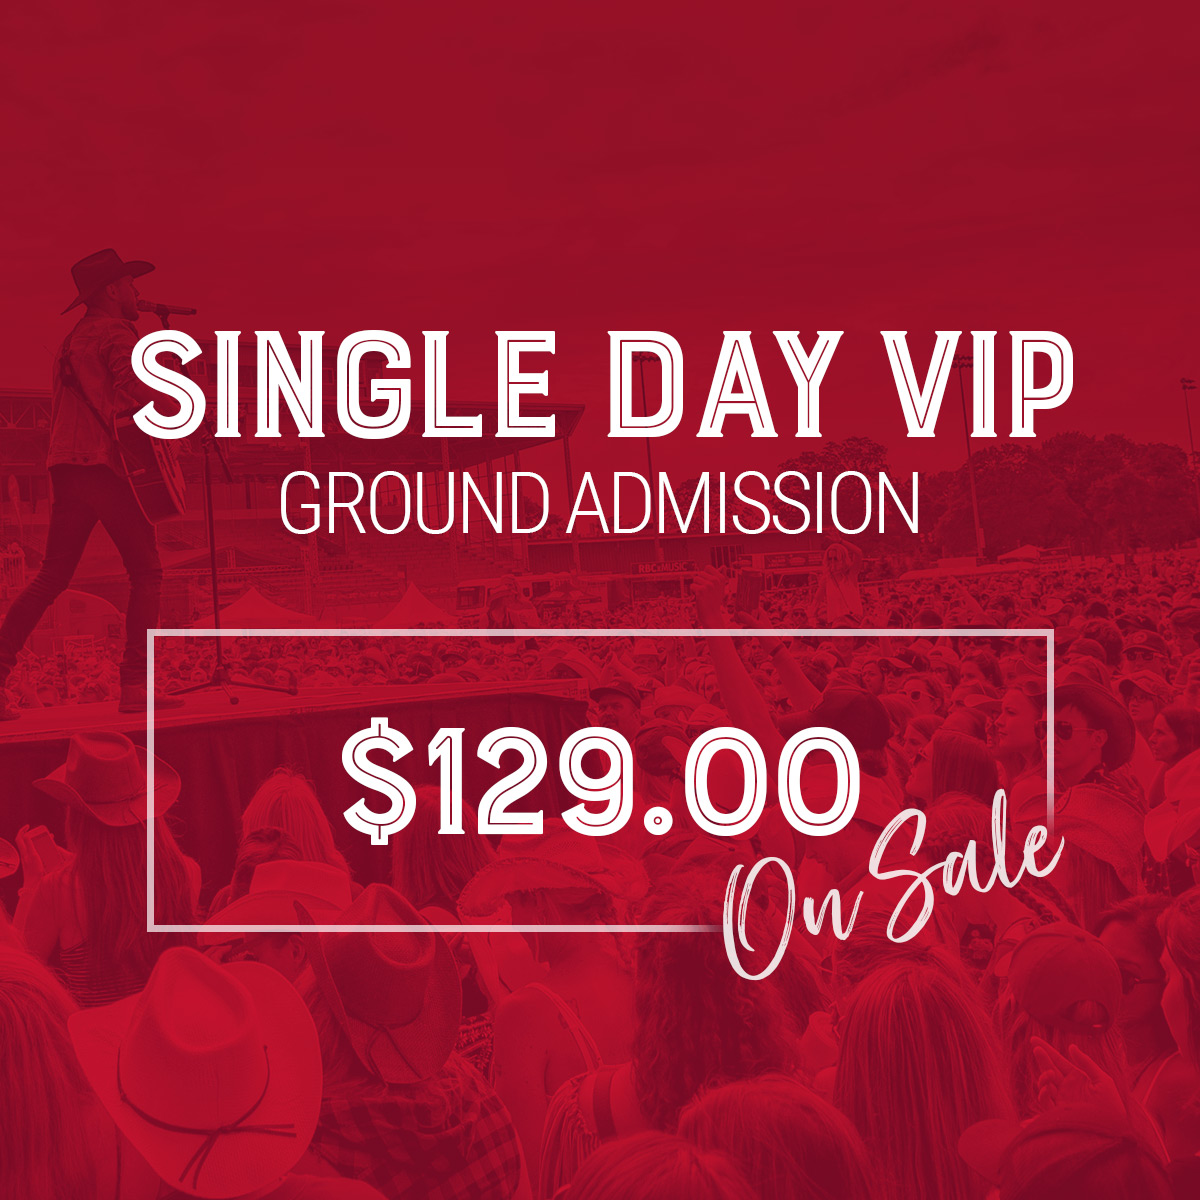 Tier 1 General Admission